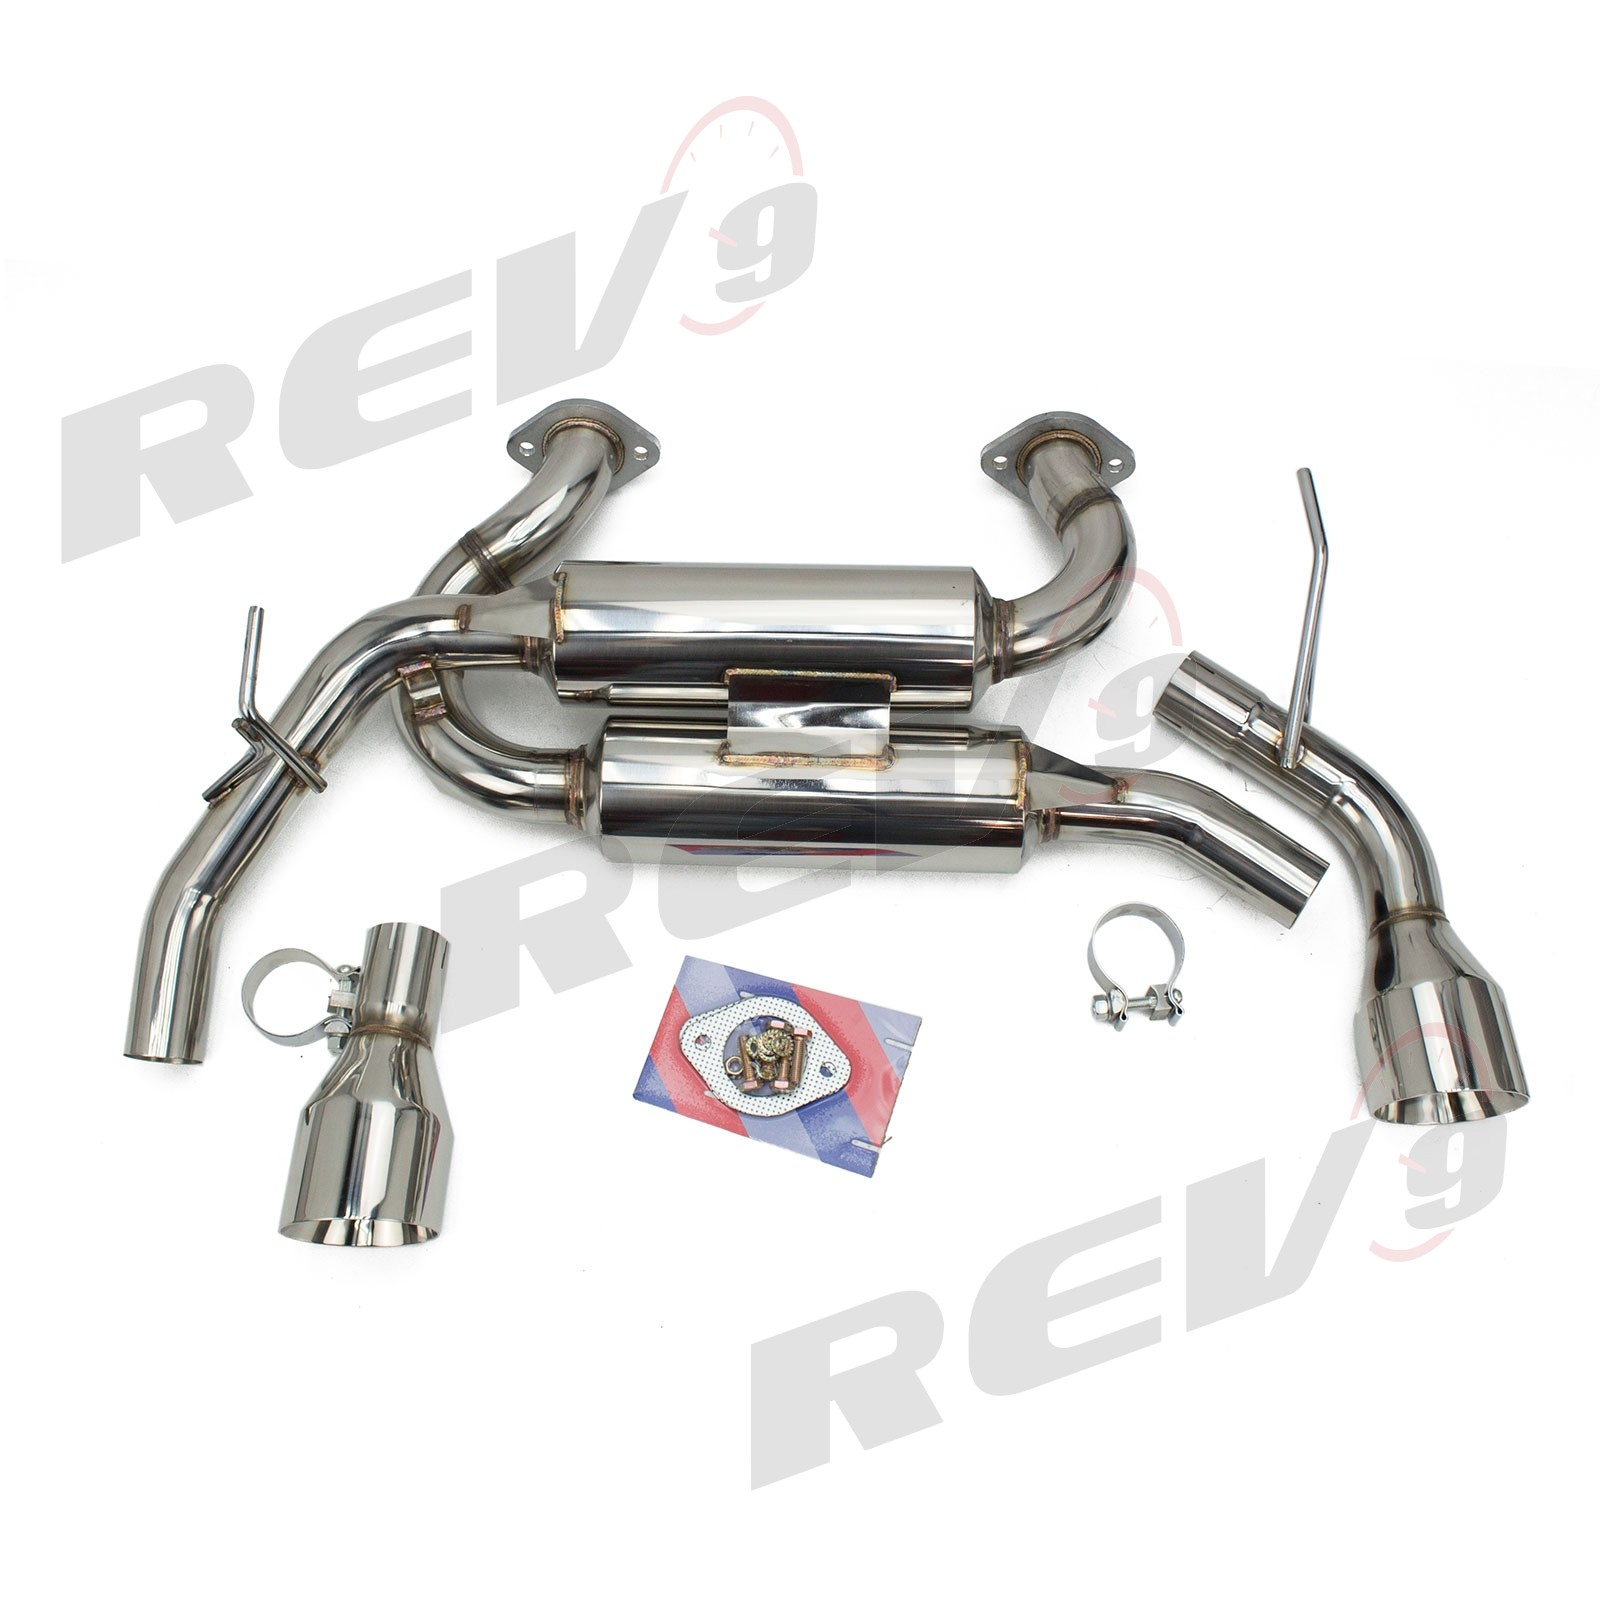 Rev9 Flowmaxx Stainless Axle Back Exhaust 60mm Pipe Fit